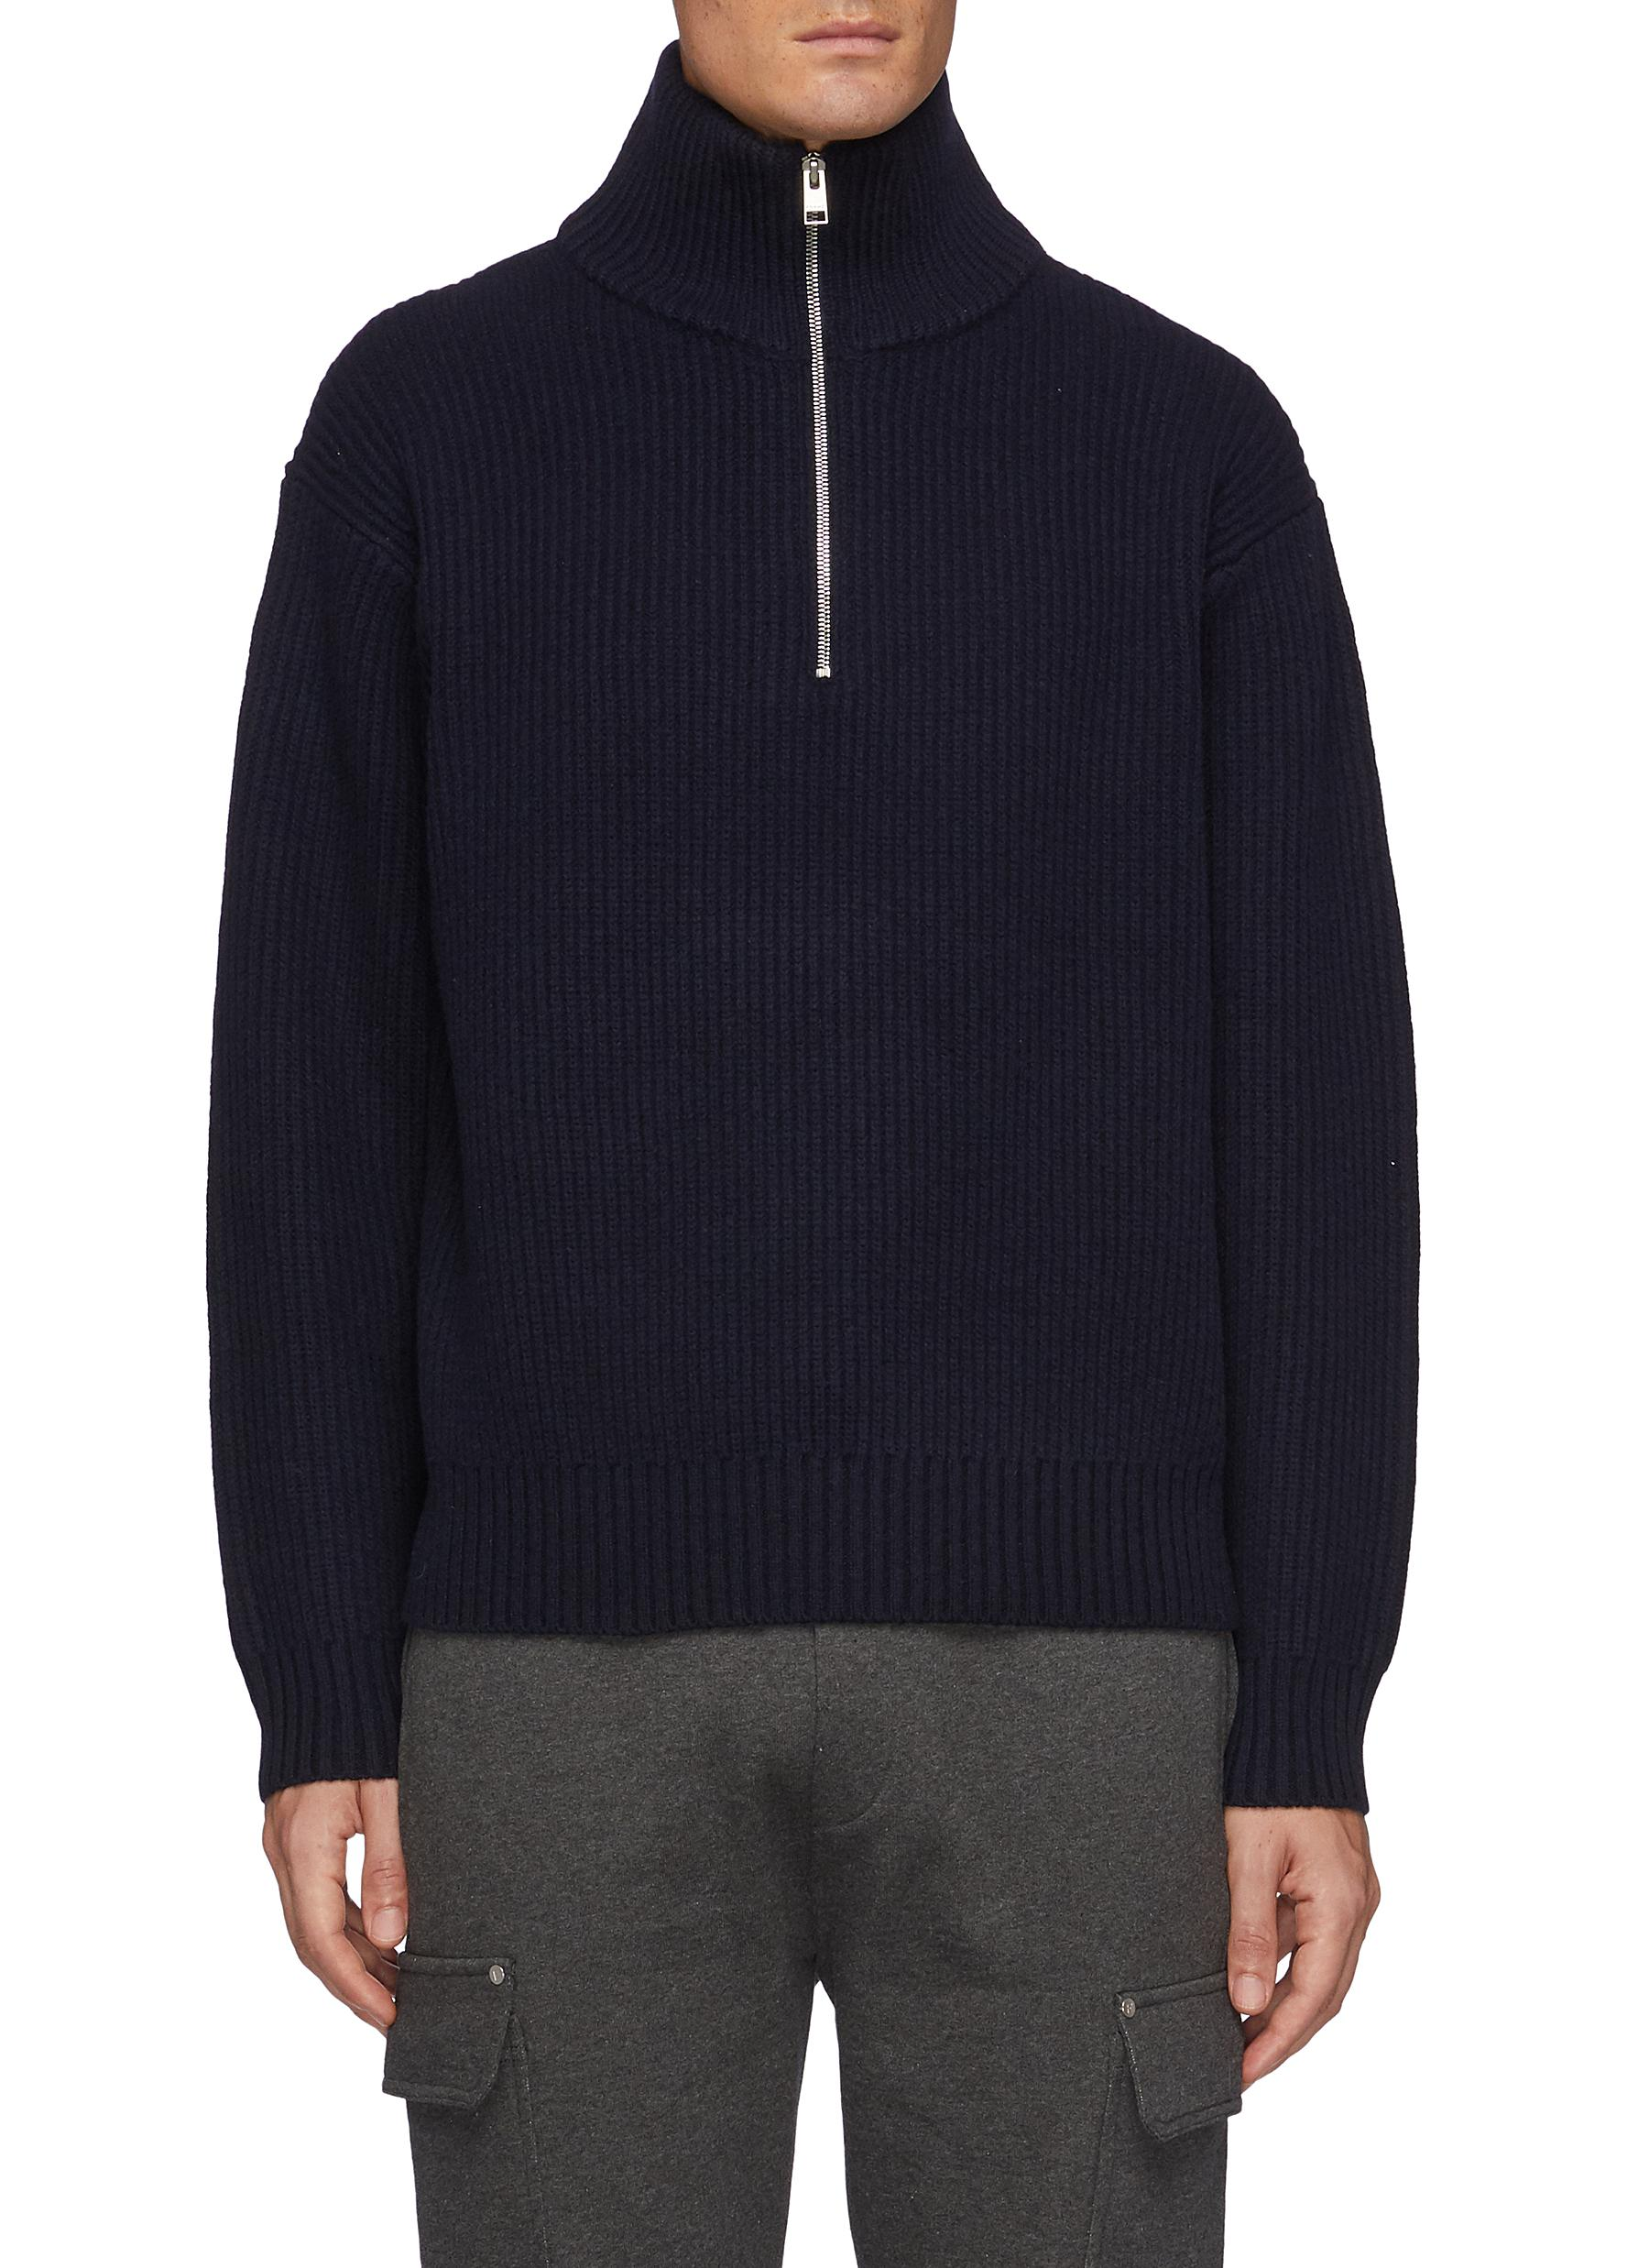 The Essential' Half Zipped Turtleneck Ribbed Wool Knit Sweater